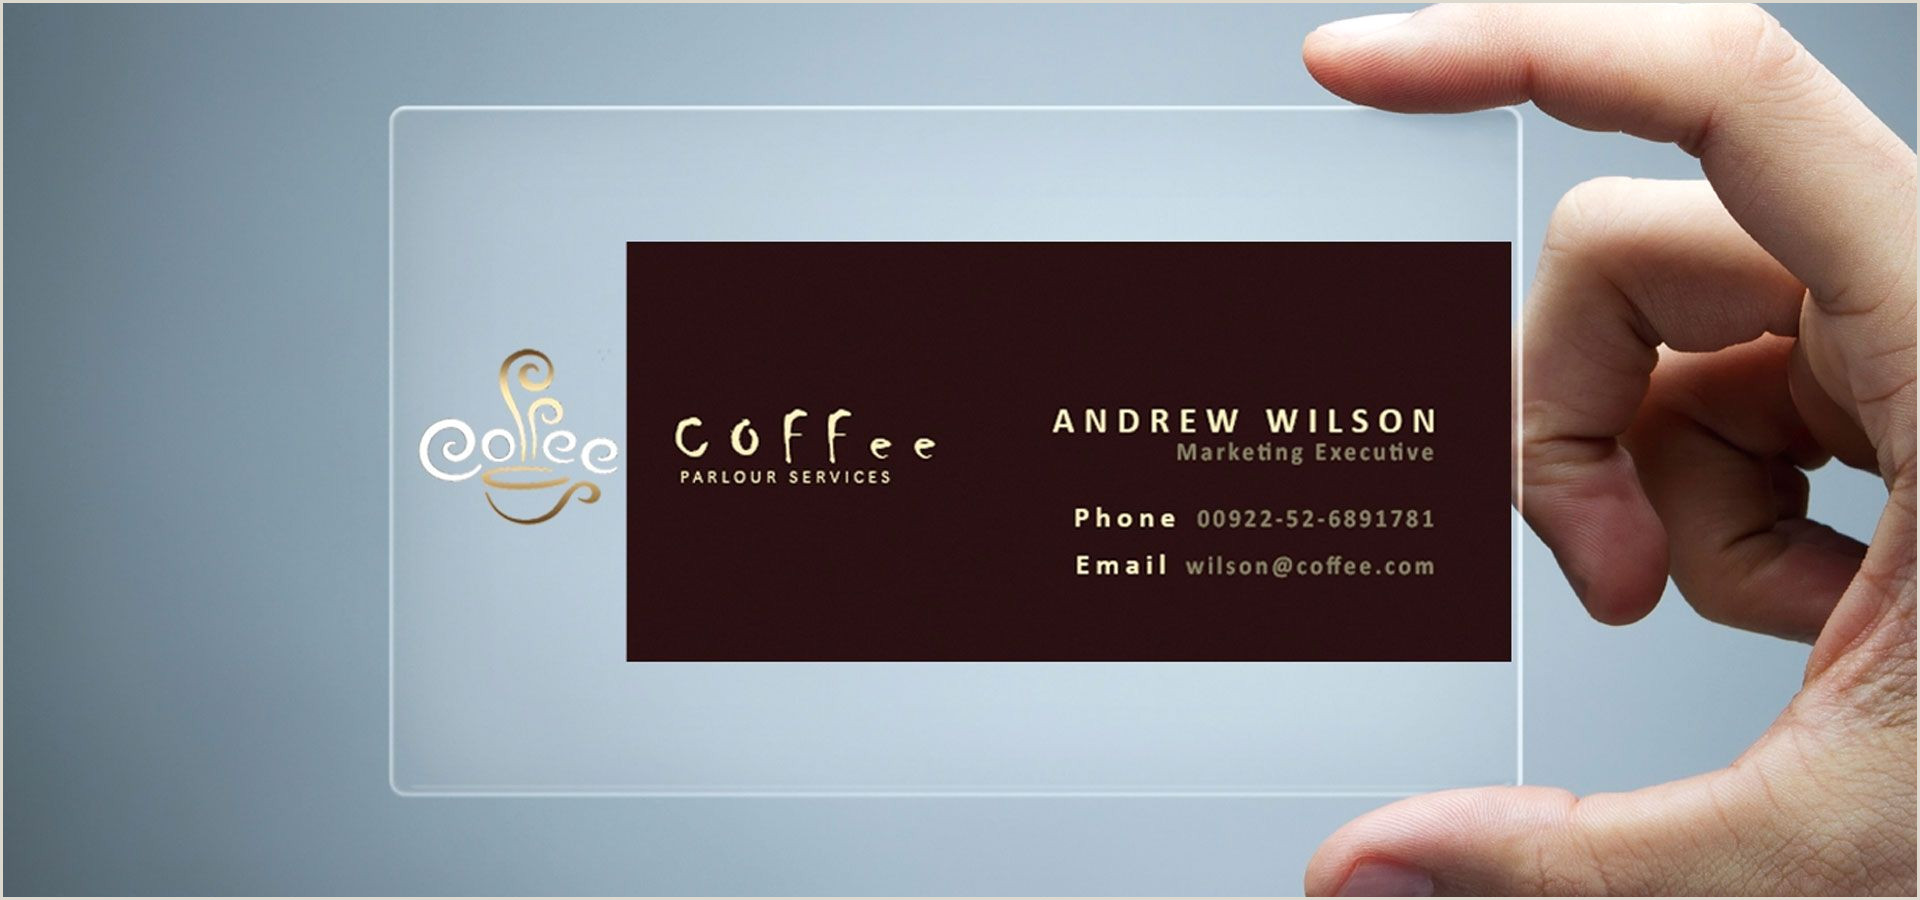 Marketing Best Business Cards The Breathtaking 023 Template Ideas Business Card